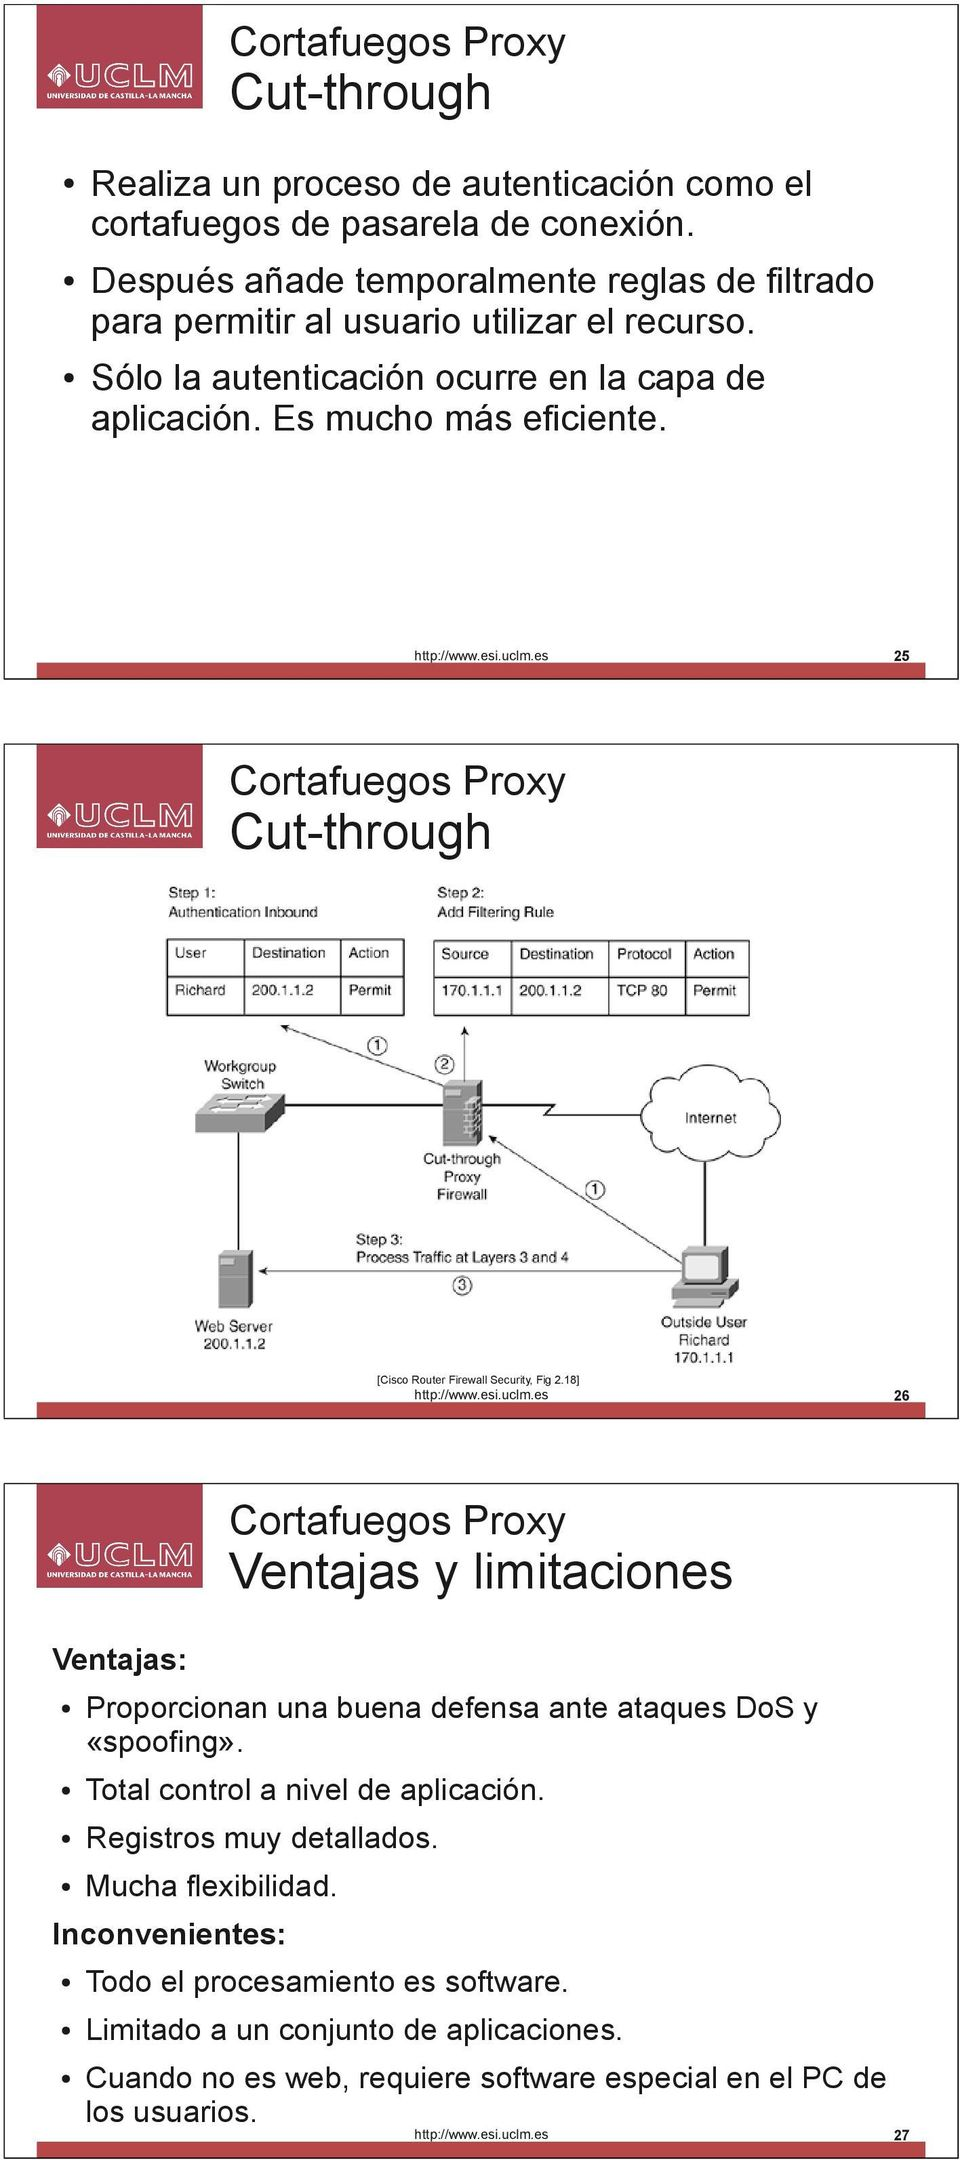 25 Cortafuegos Proxy Cut-through [Cisco Router Firewall Security, Fig 2.